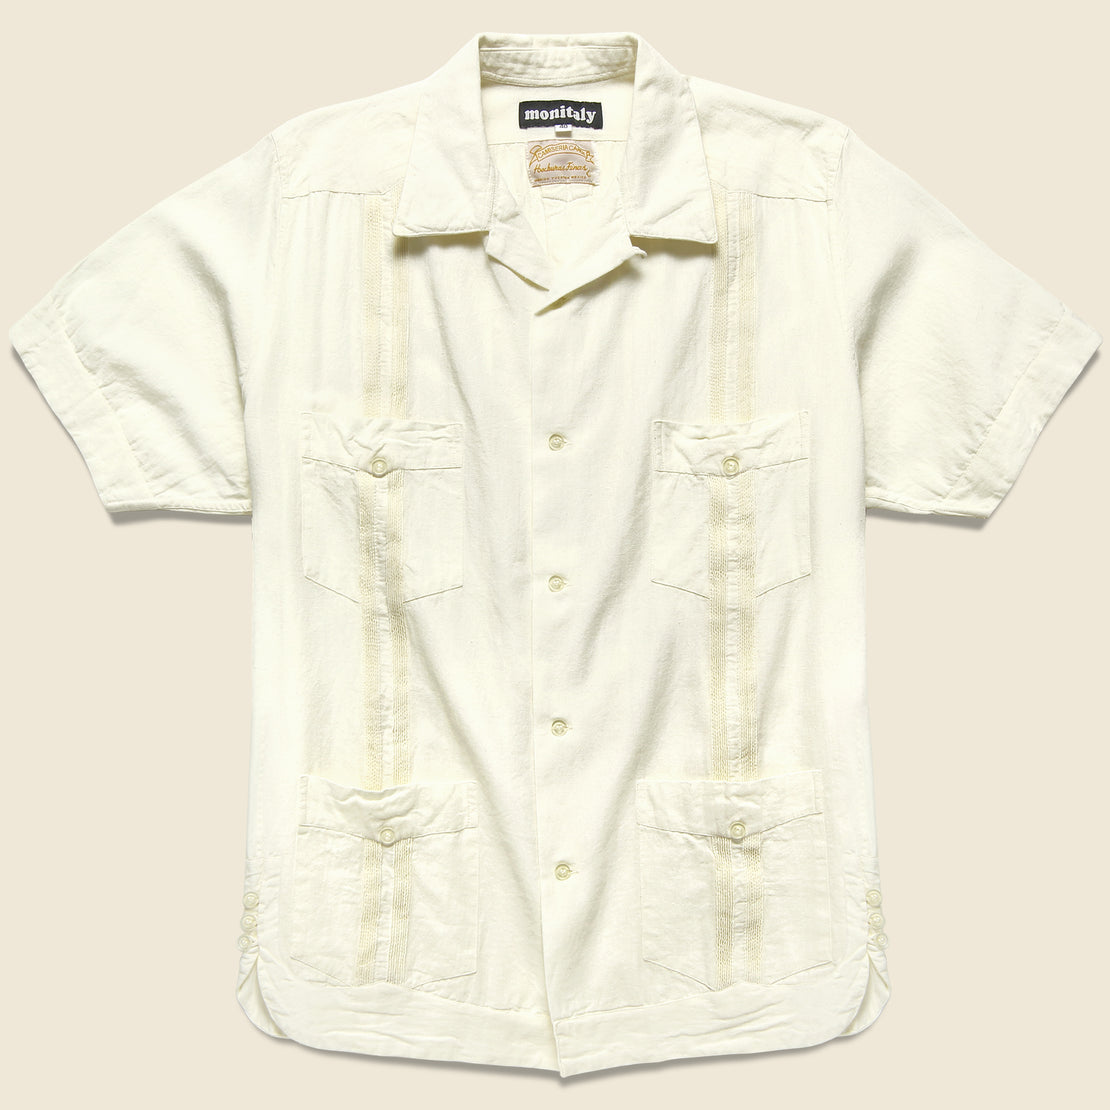 Monitaly Canul Manta Guayabera Shirt - Natural